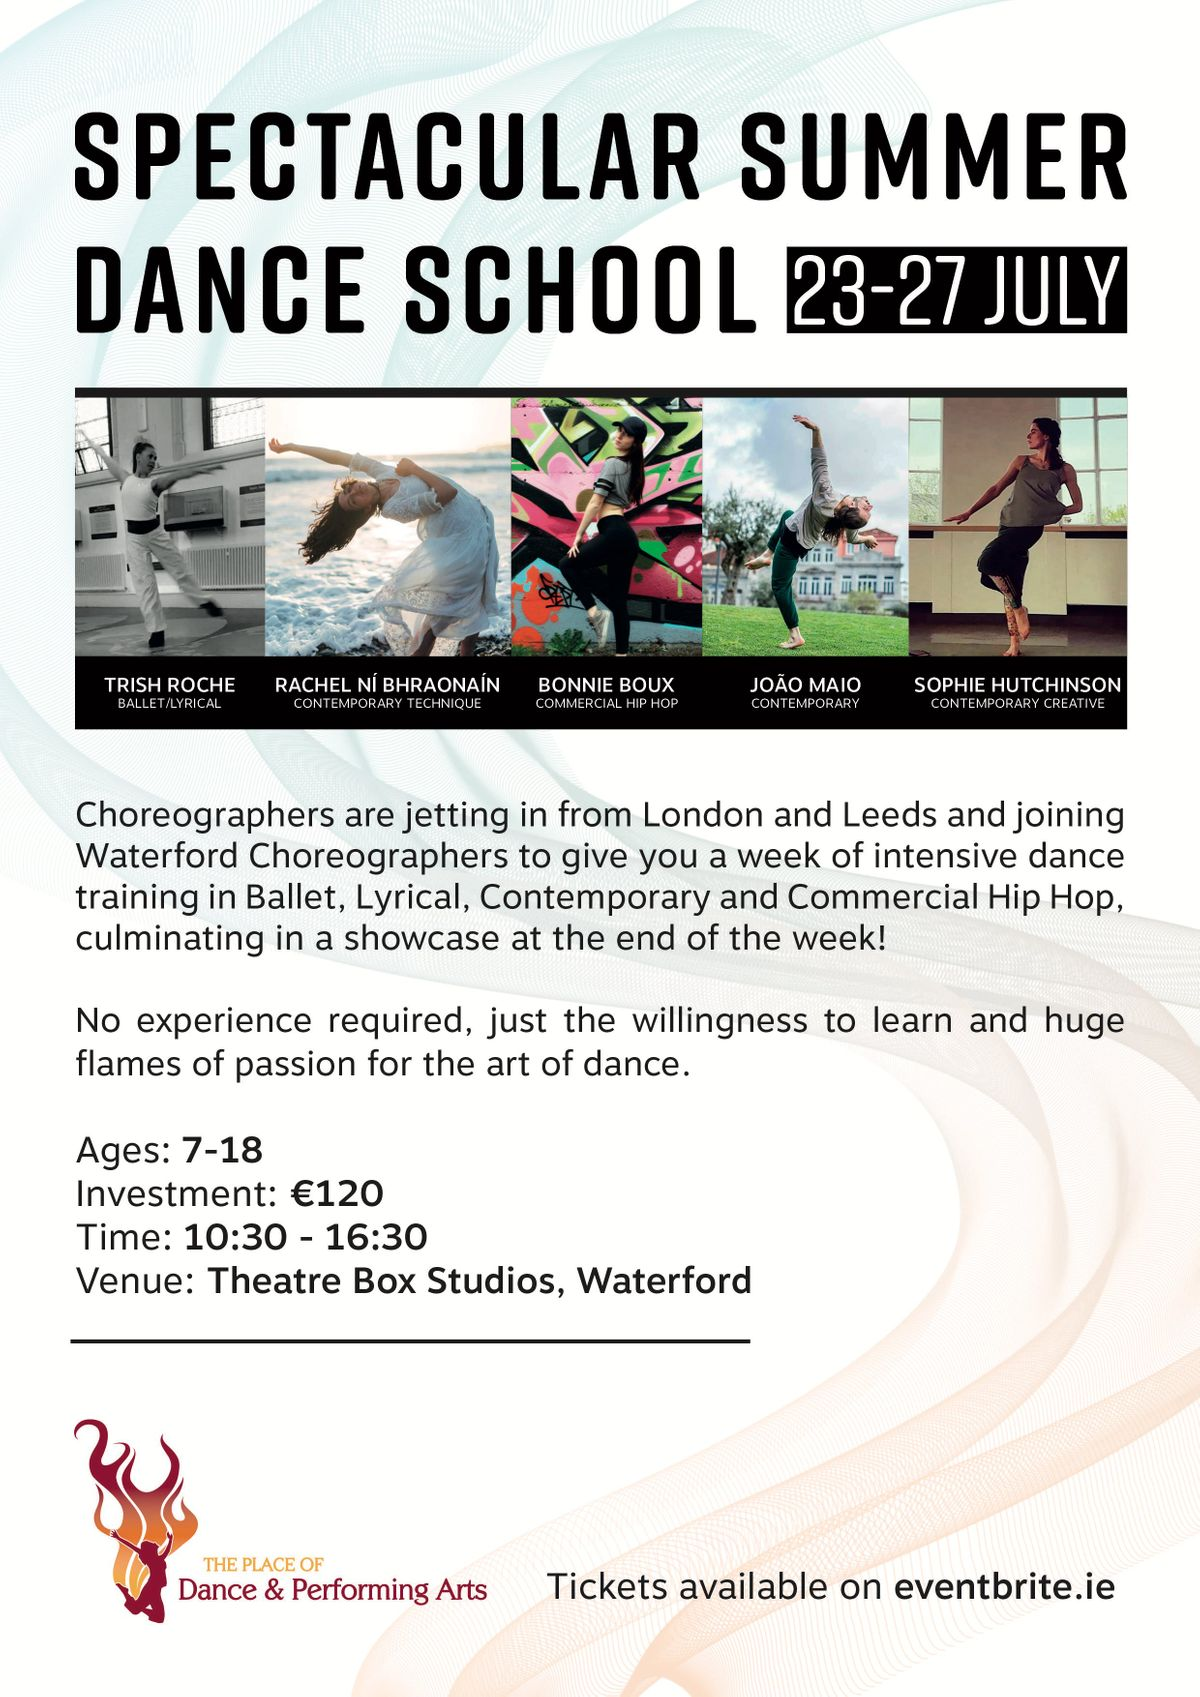 Spectacular Summer Dance Camp